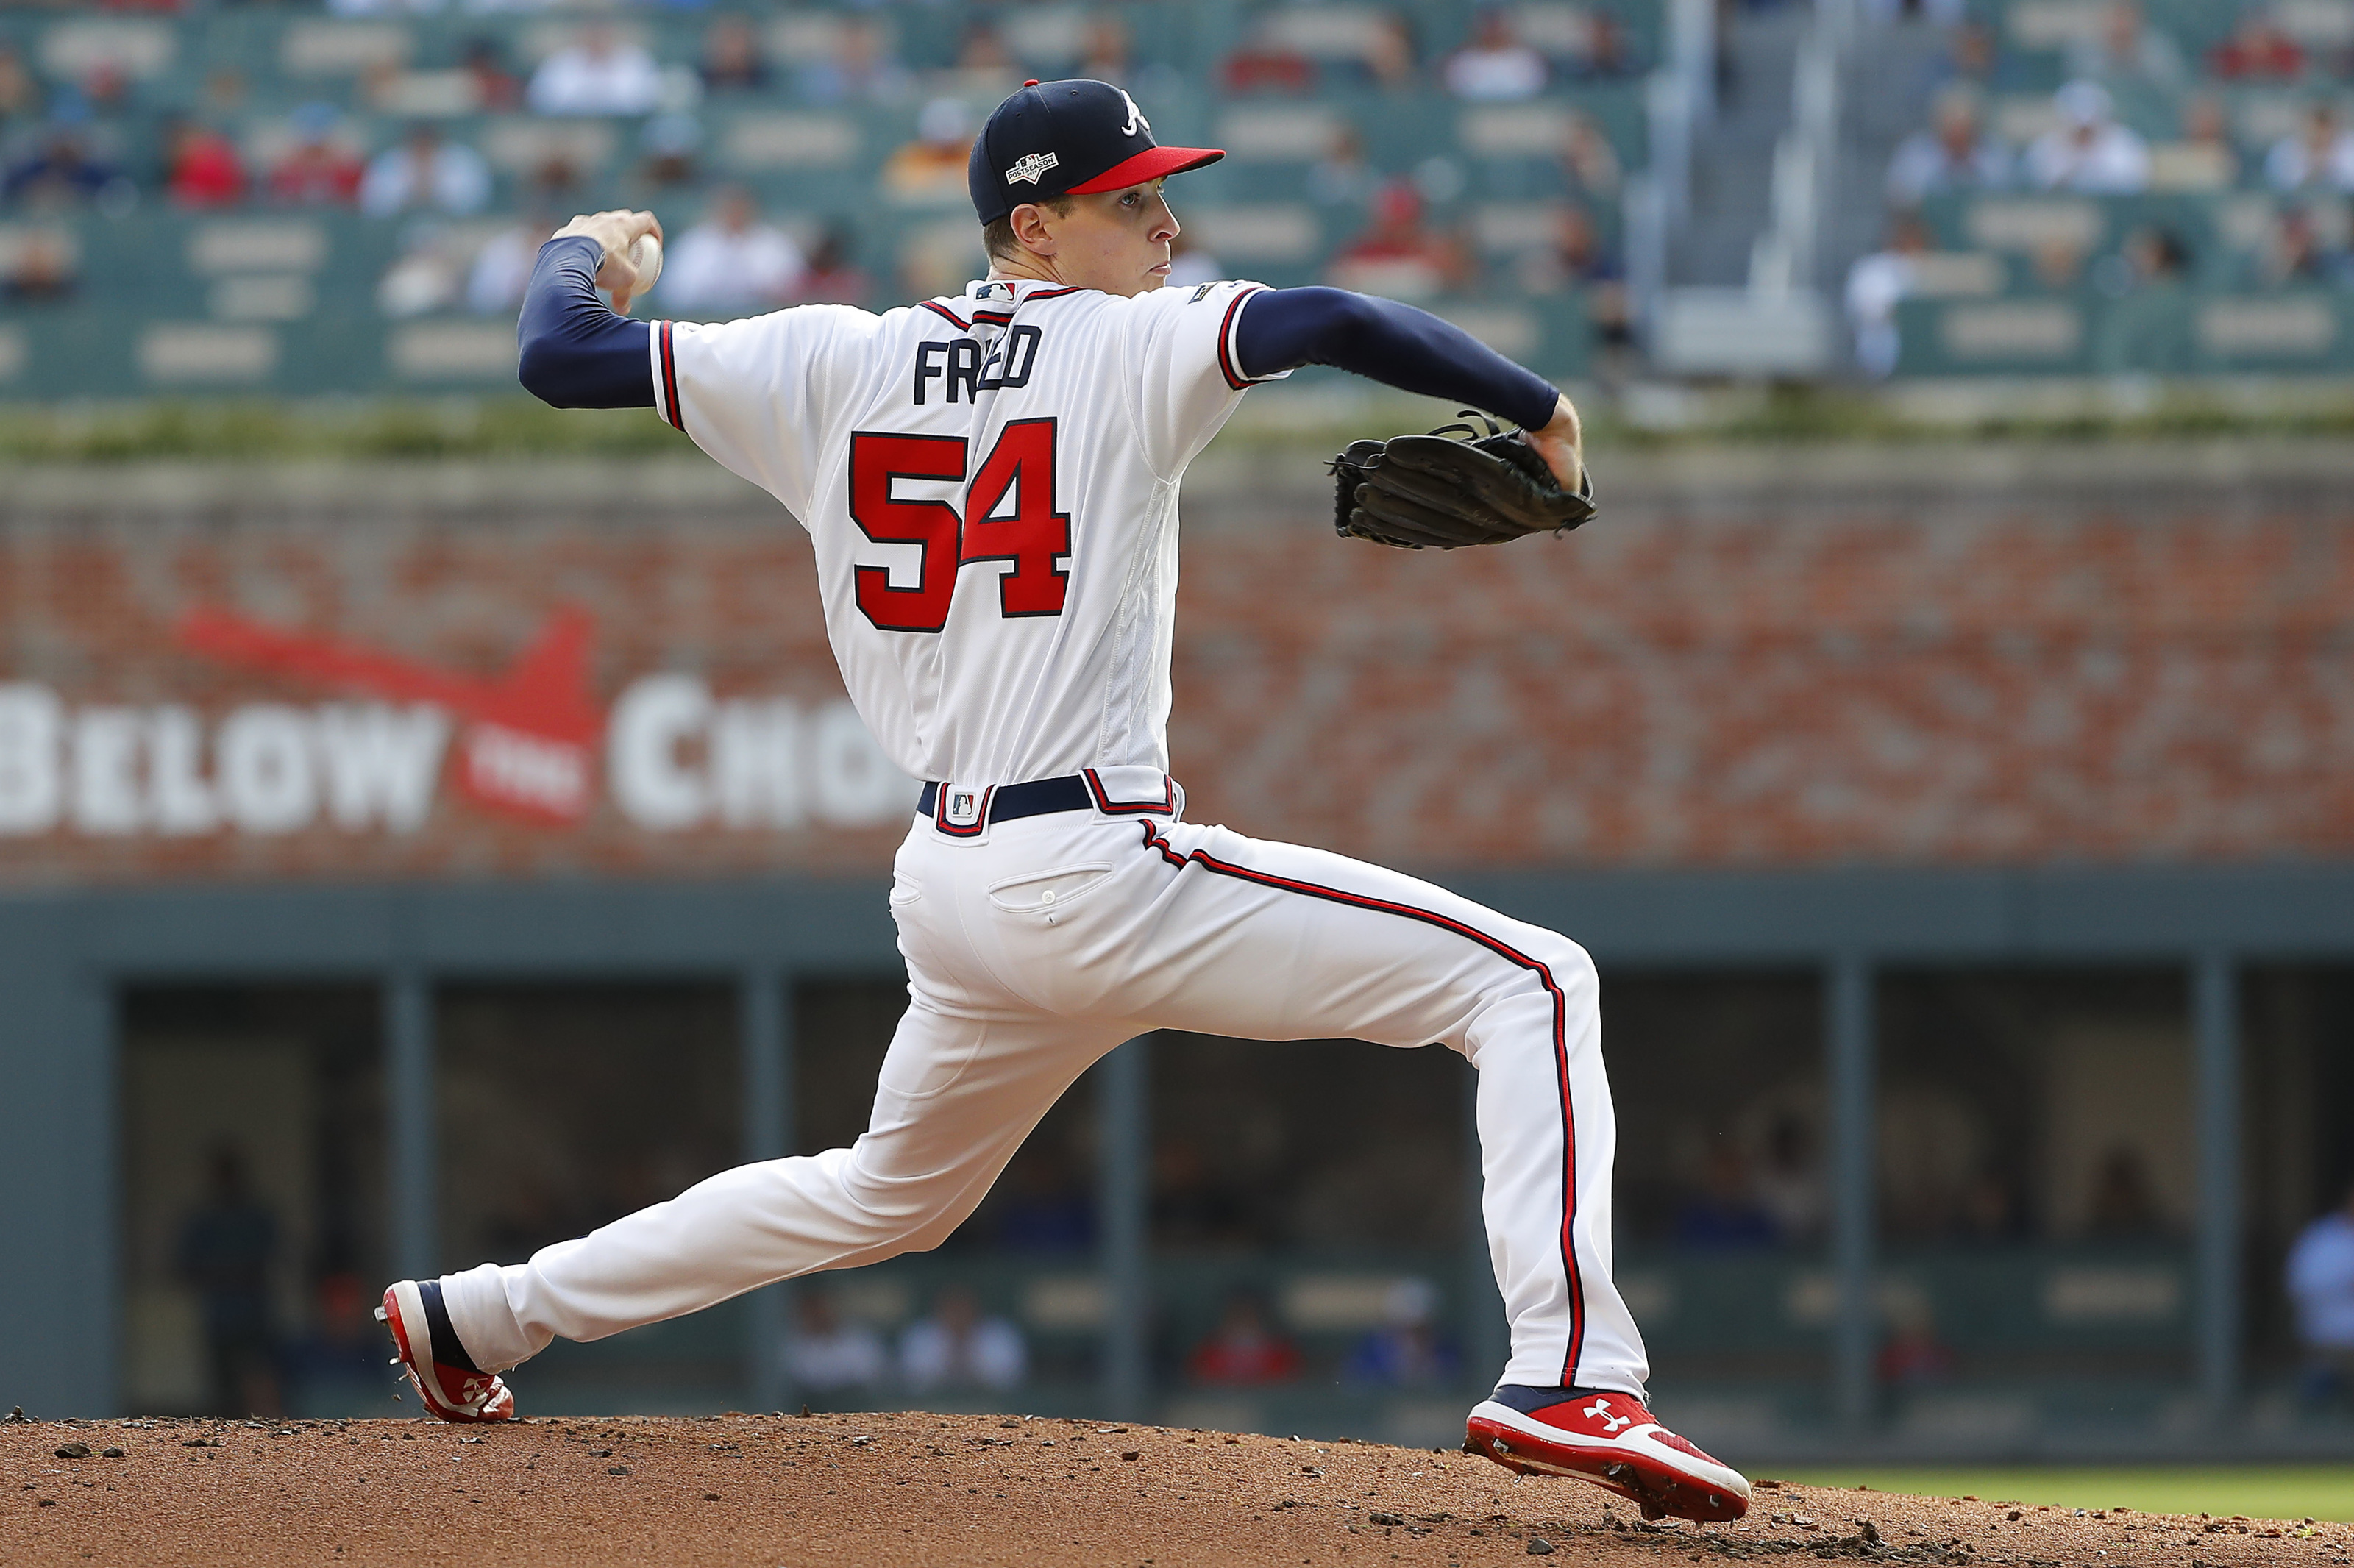 Braves Spring Training: Max Fried, Ian Anderson both struggle in debuts